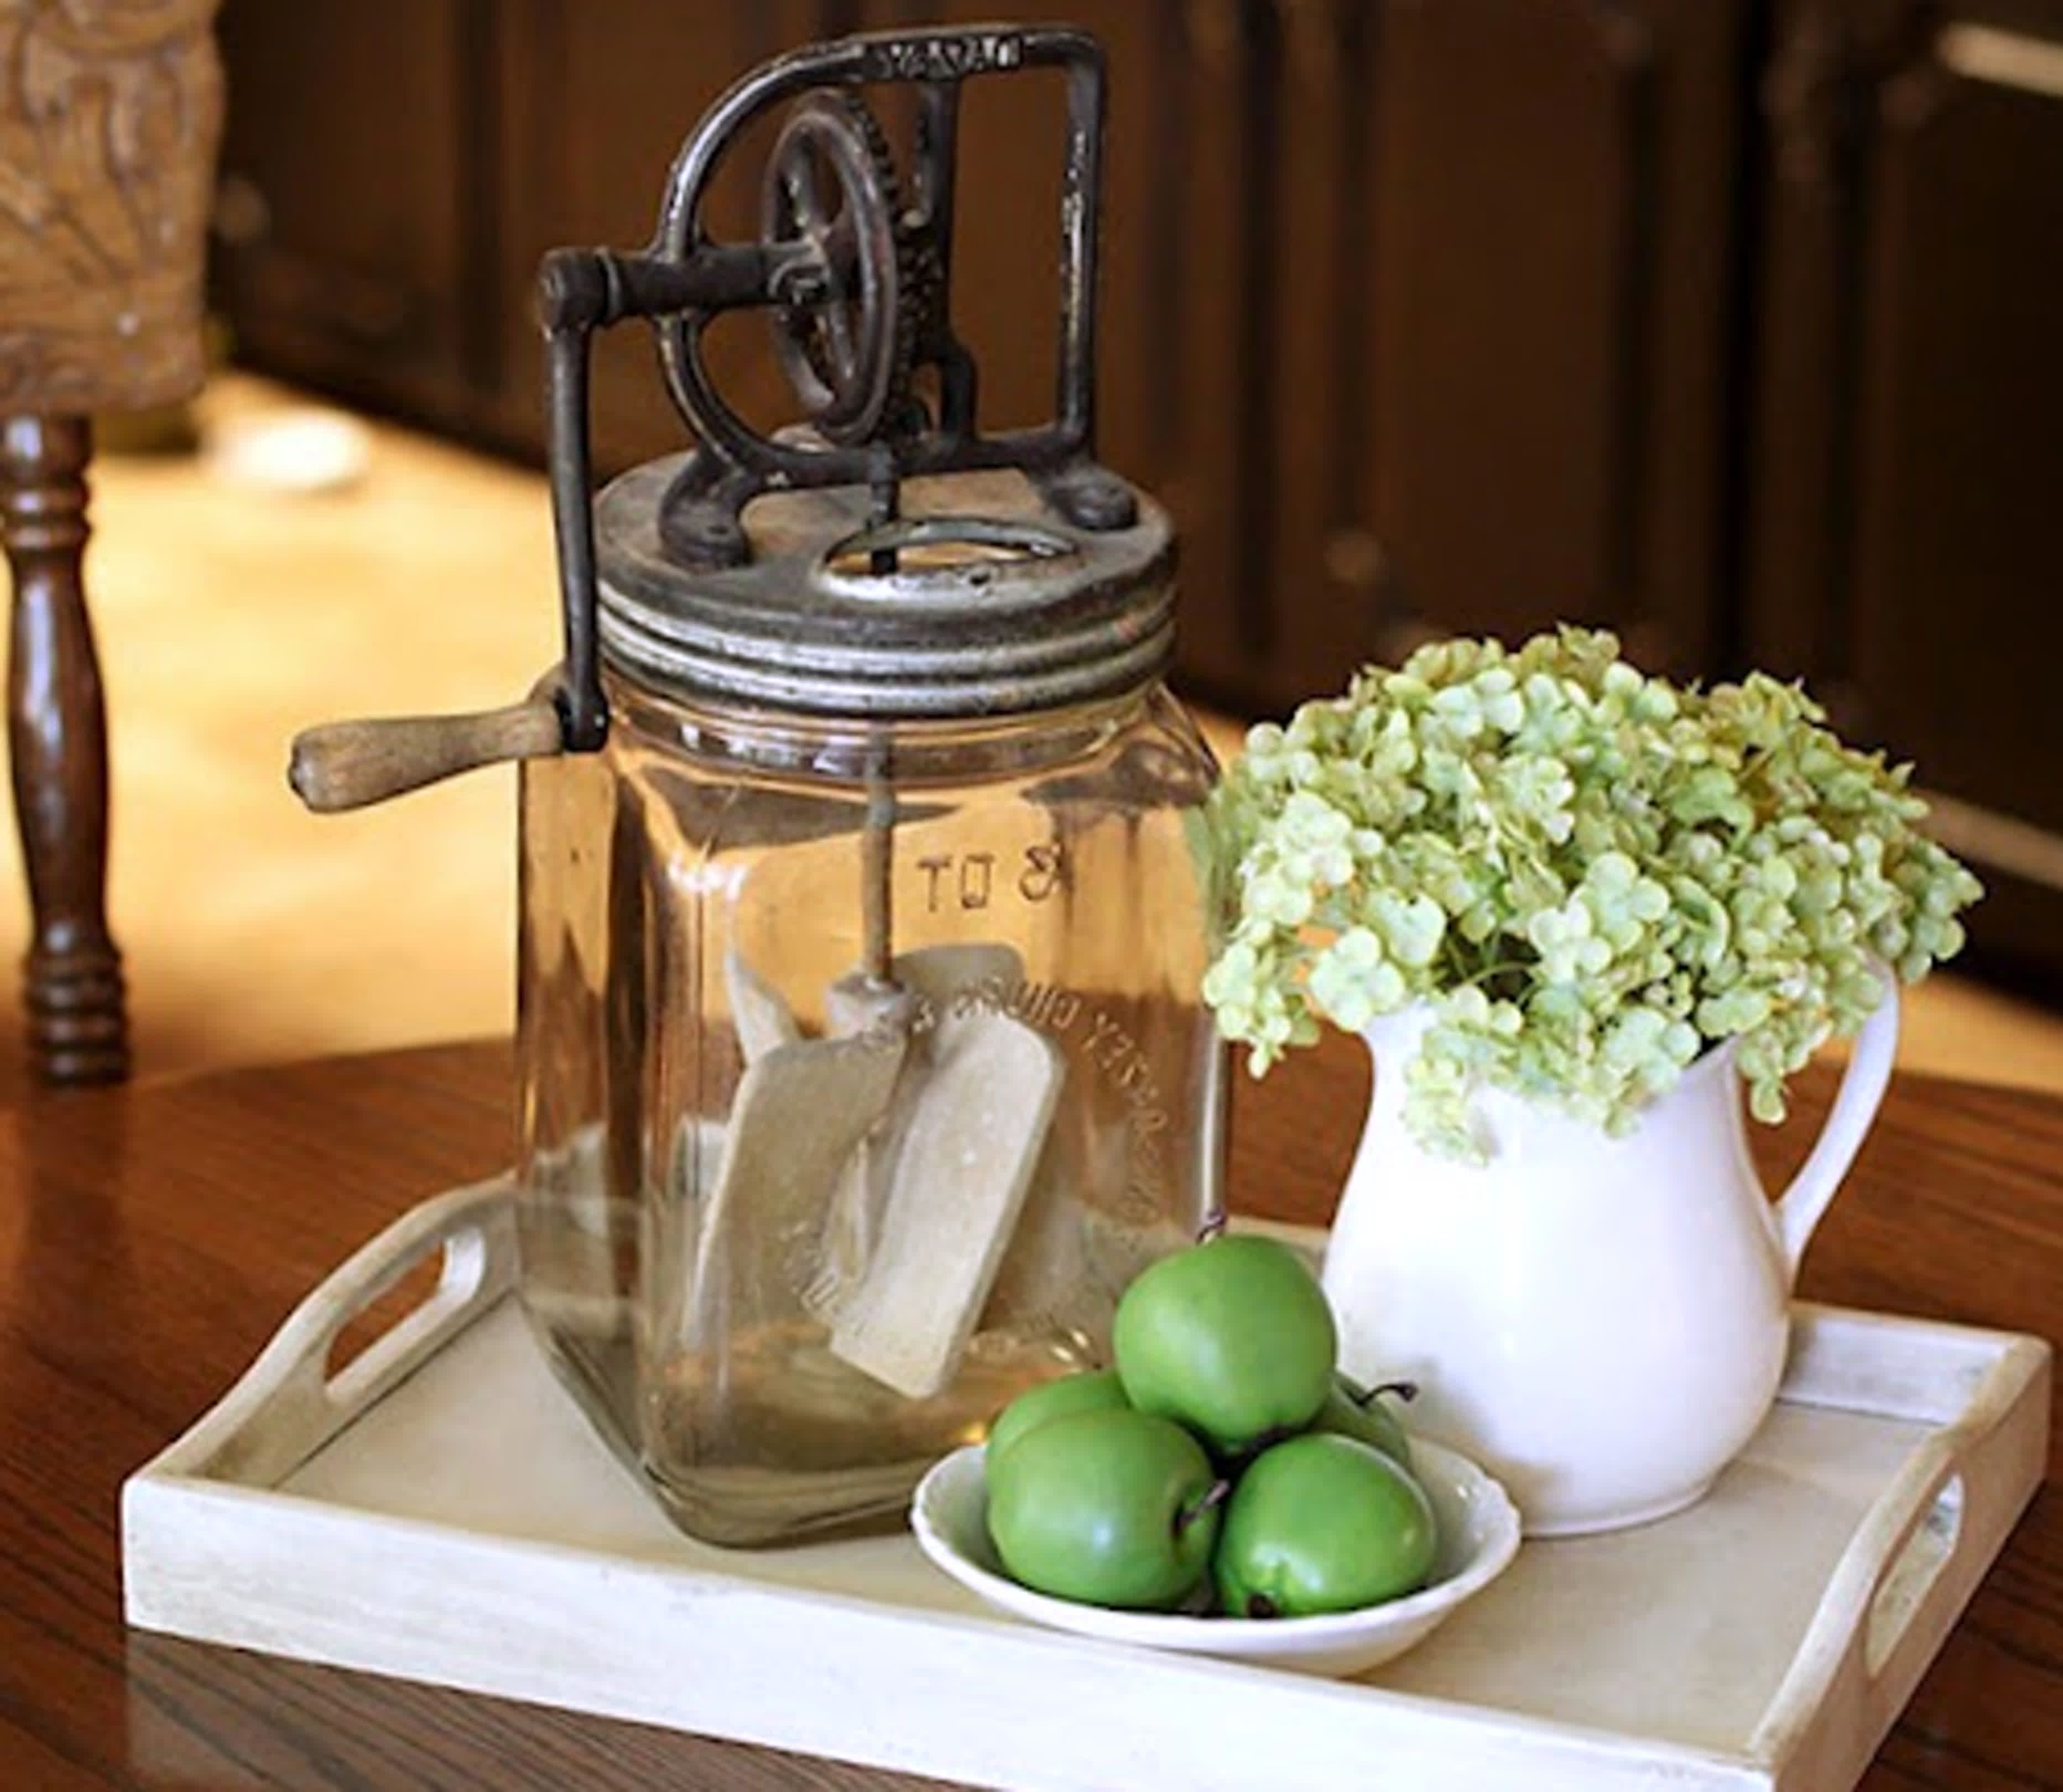 Everyday Kitchen Table Centerpiece Ideas, Everyday Dining Table ...